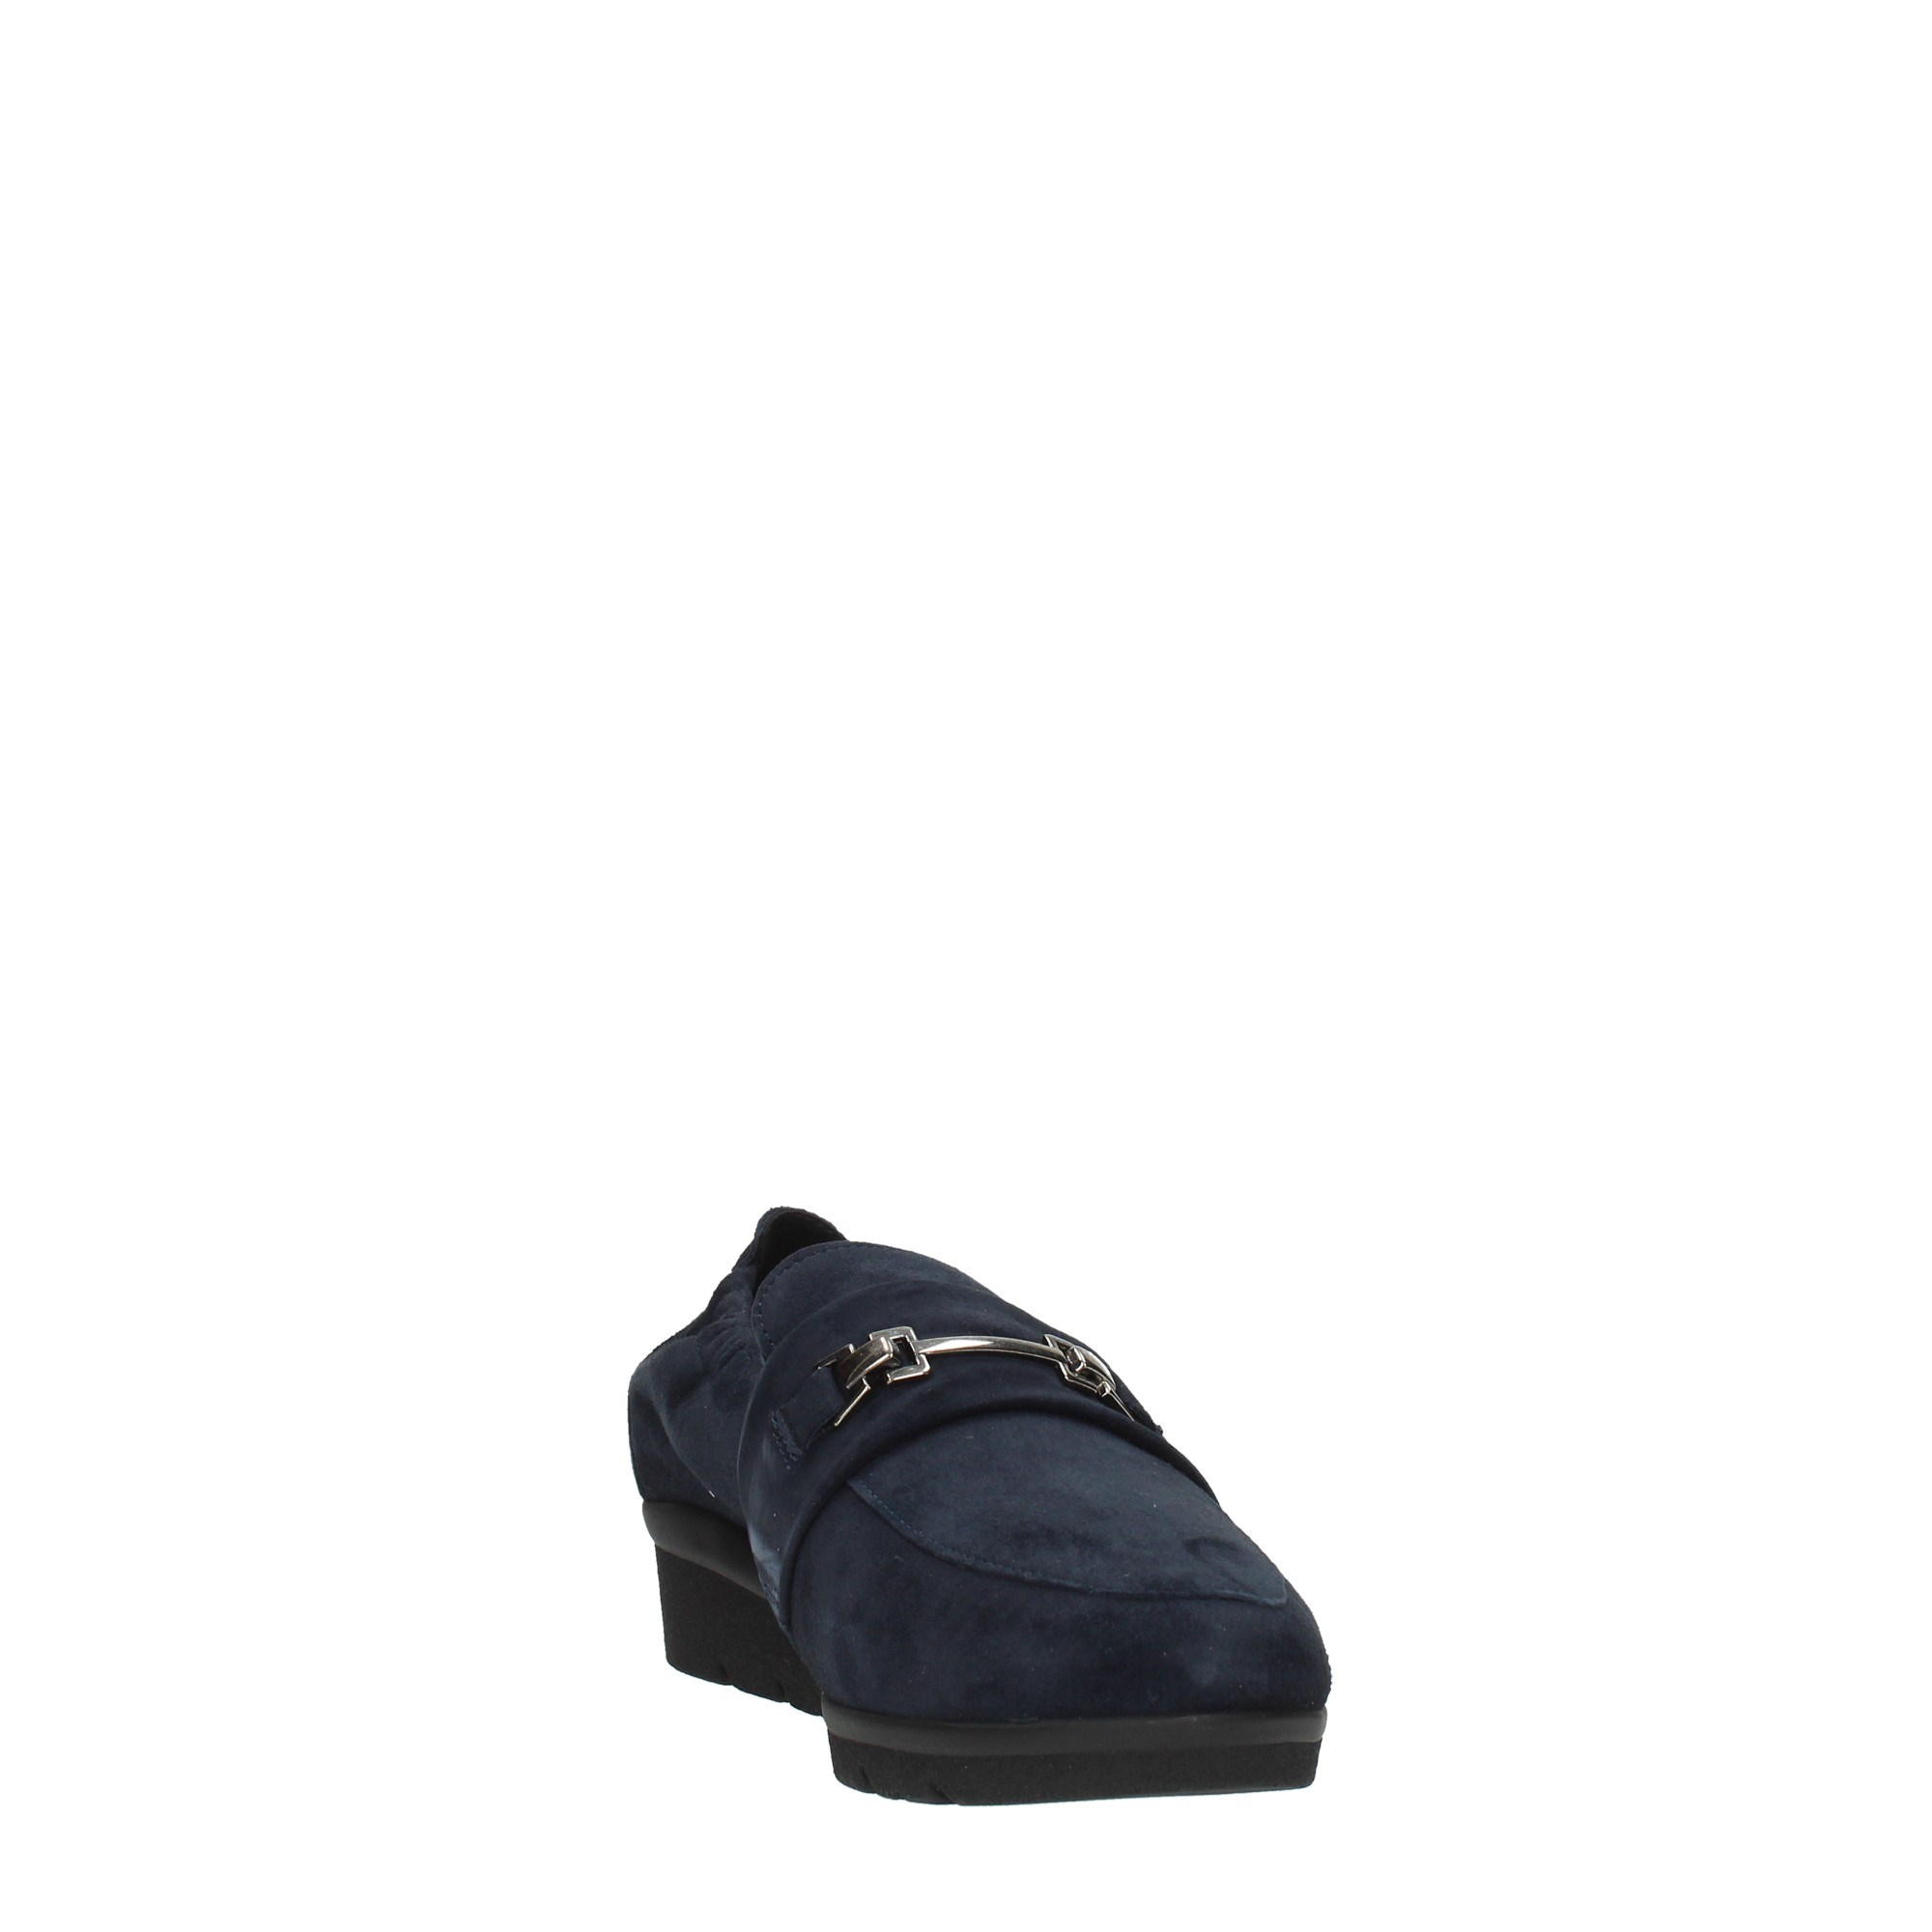 Mephisto Shoes Women Classic Shoes Blue NADIRA